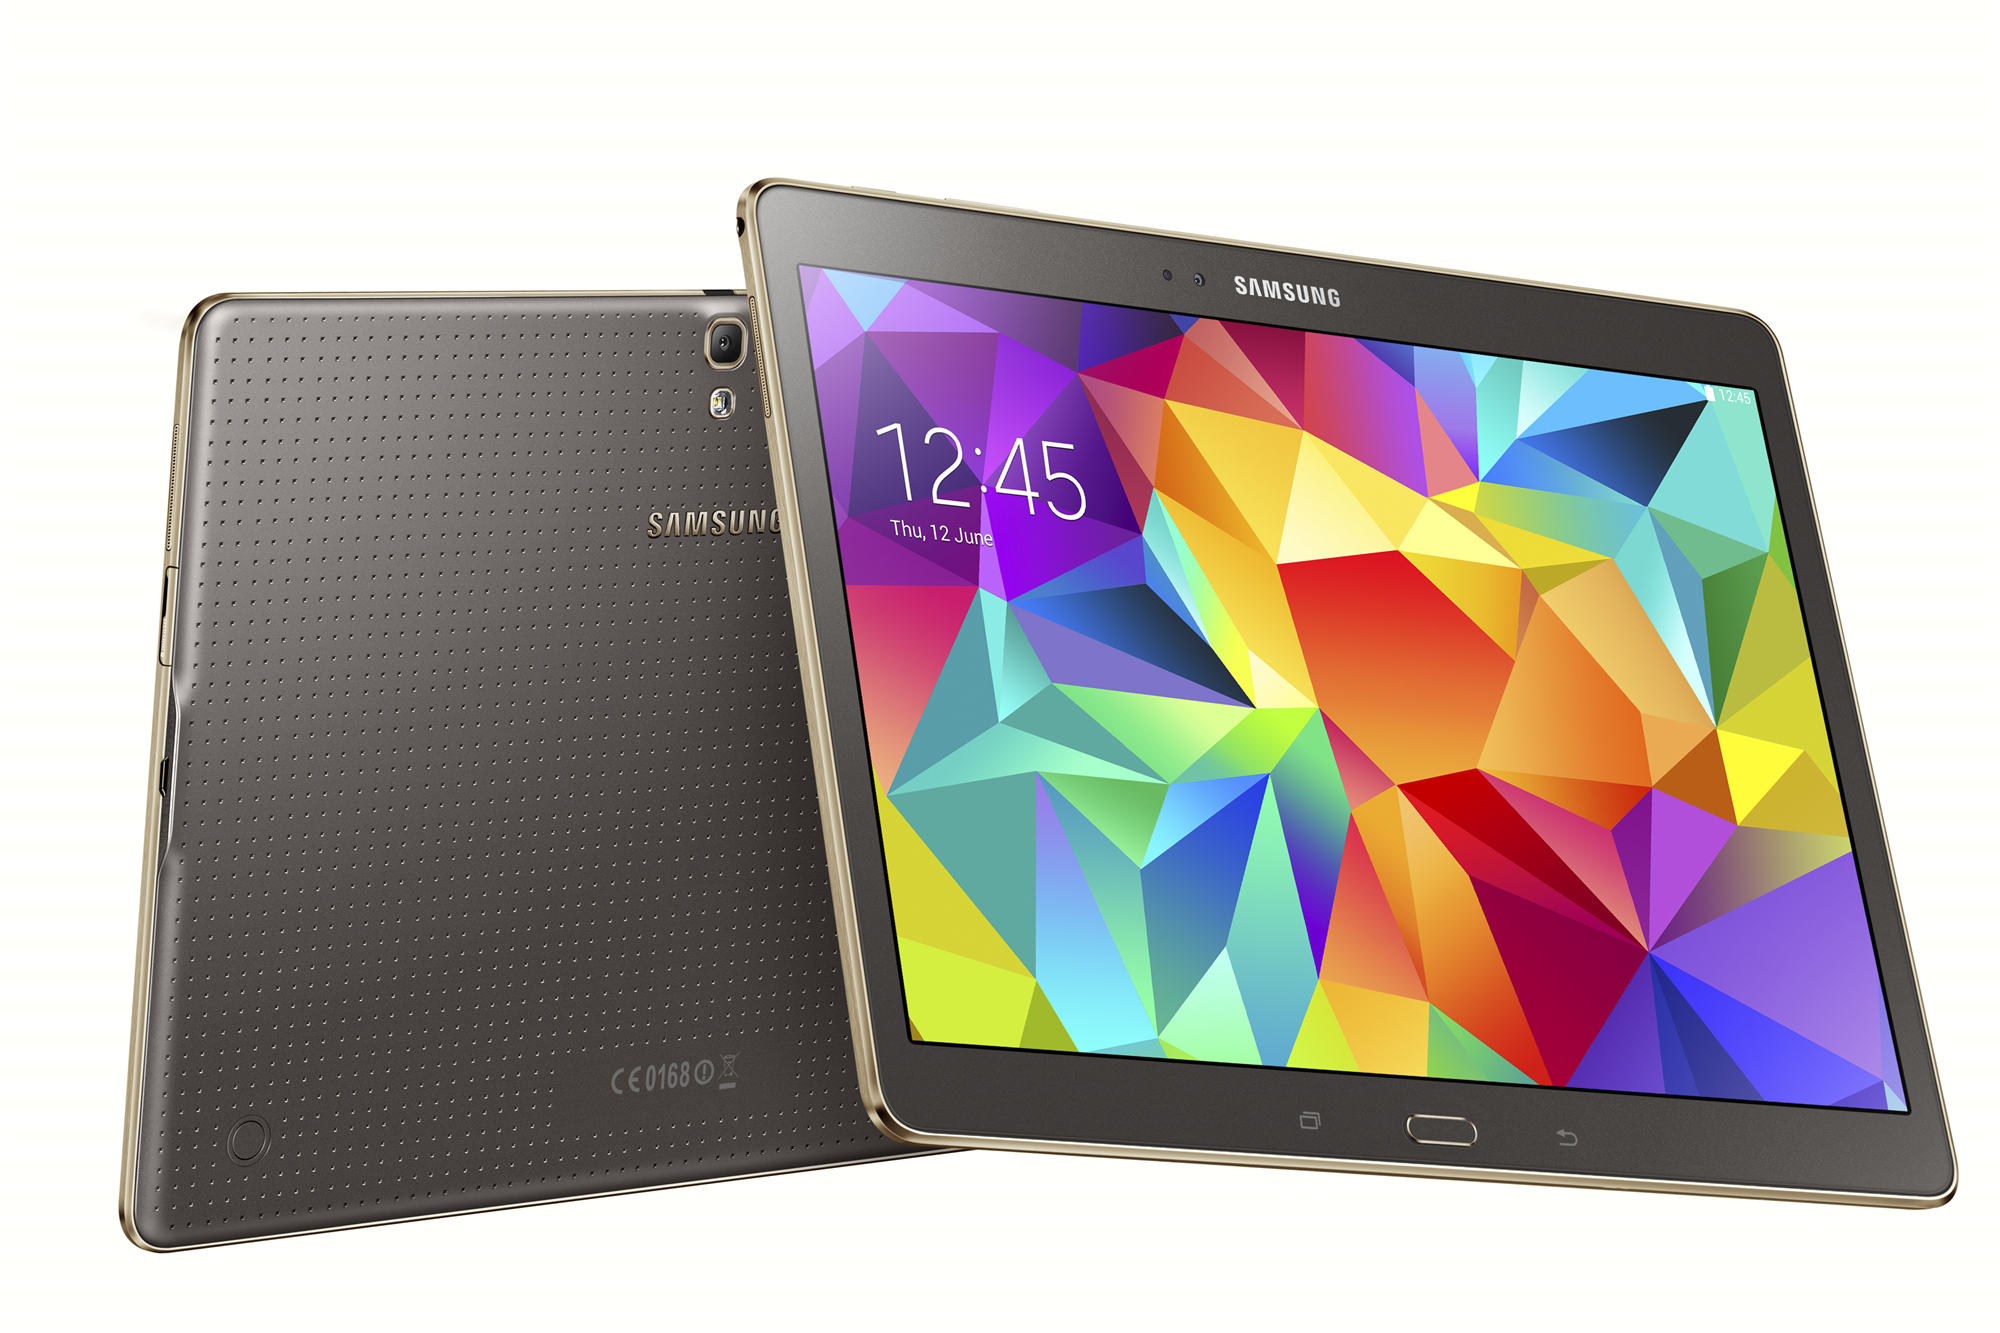 samsung announces galaxy tab s with wqxga 2560x1600 super amoled display sammobile sammobile. Black Bedroom Furniture Sets. Home Design Ideas